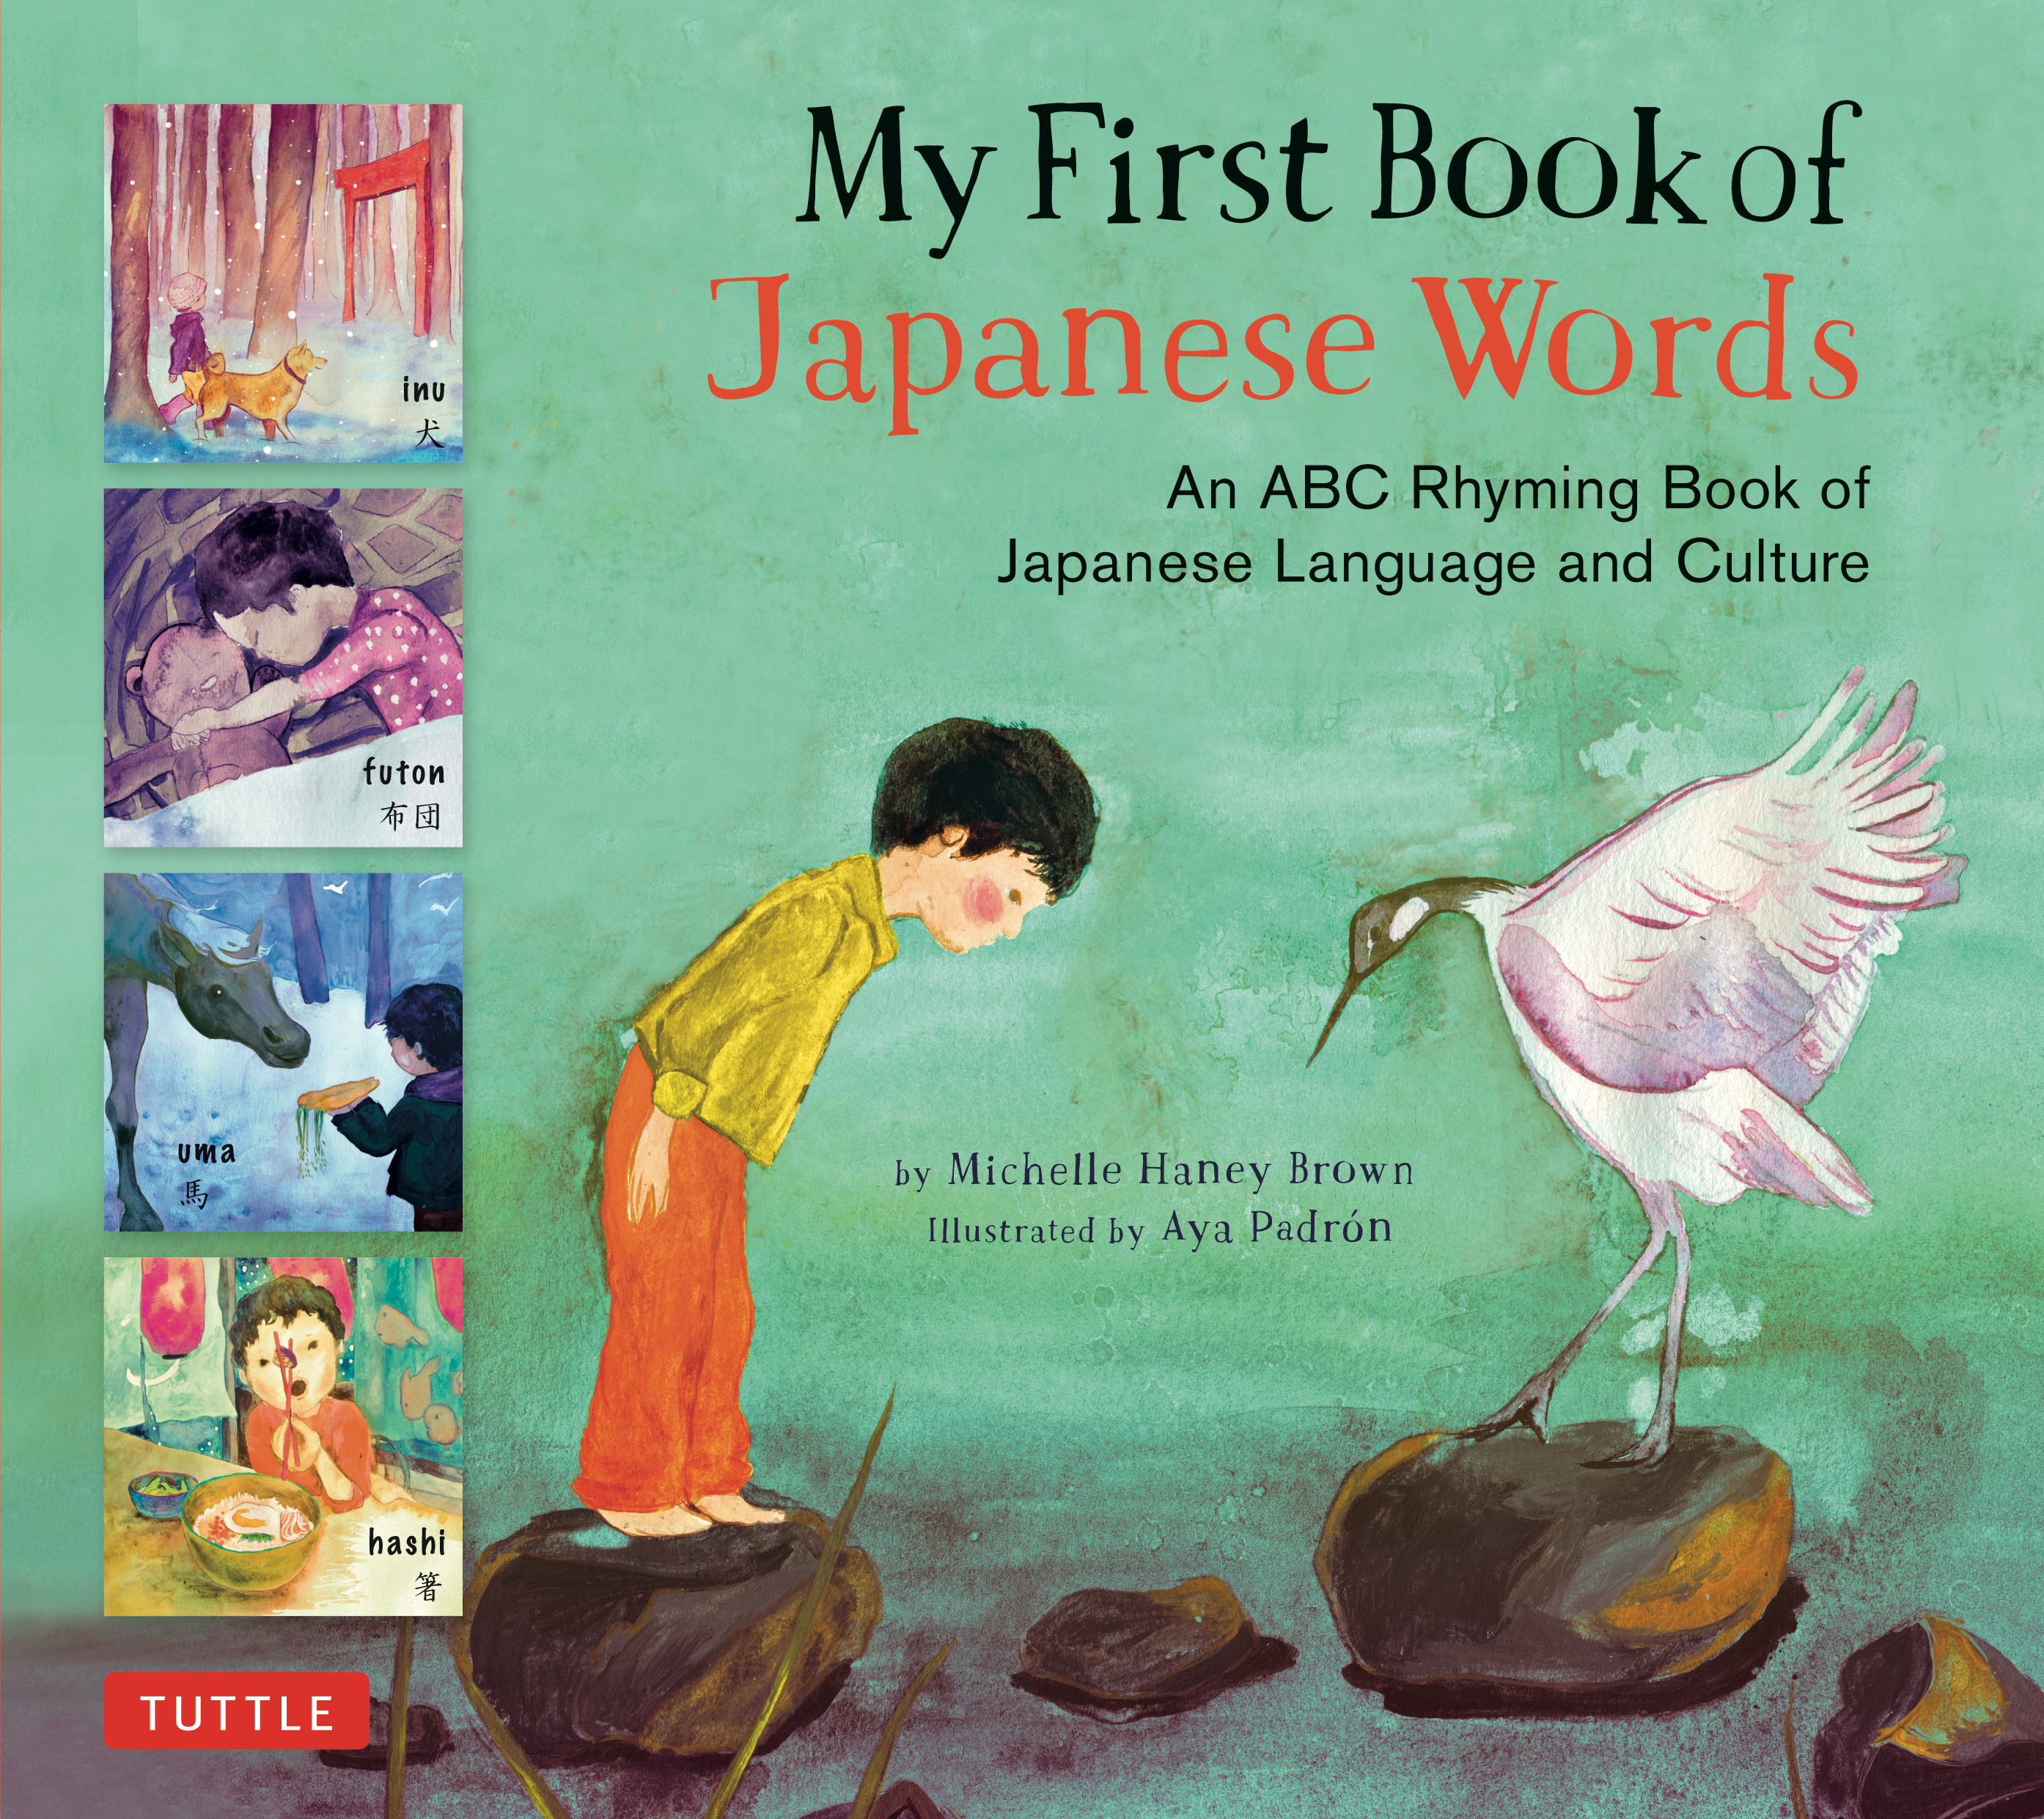 My First Book of Japanese Words is a beautifully illustrated book that  introduces young children to Japanese language and culture through everyday  words.